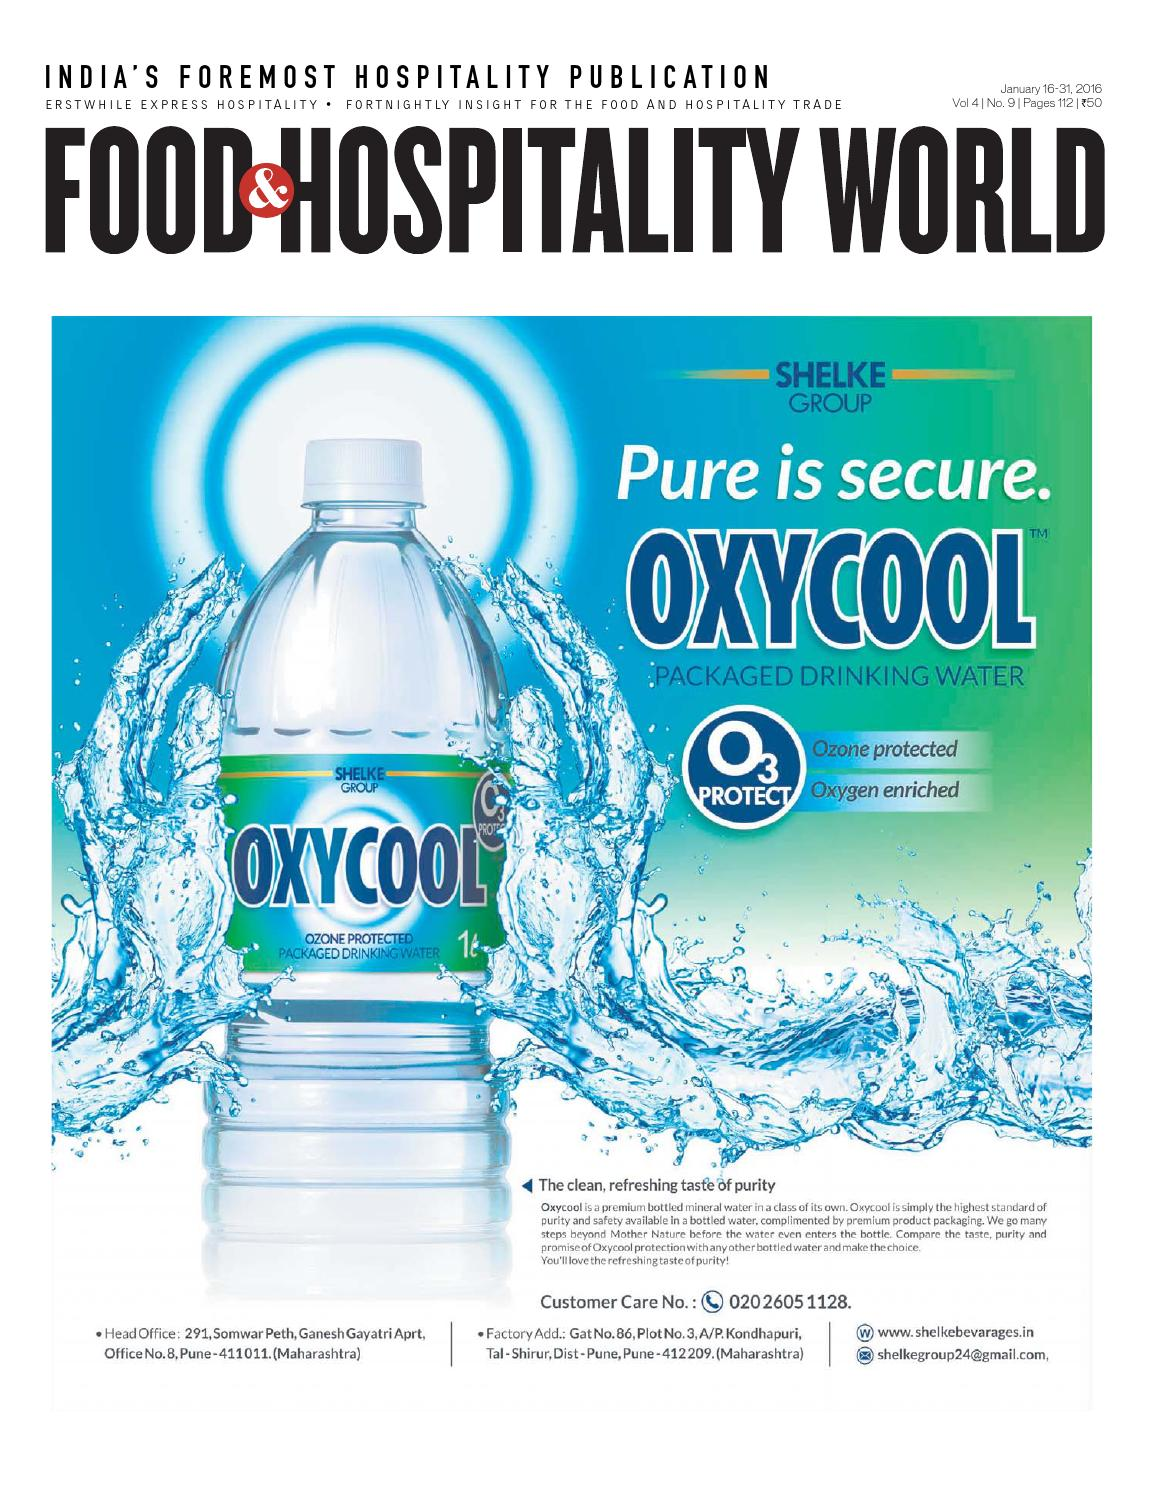 Food and Hospitality World (Vol.4, No.9) January 16-31, 2016 by ...